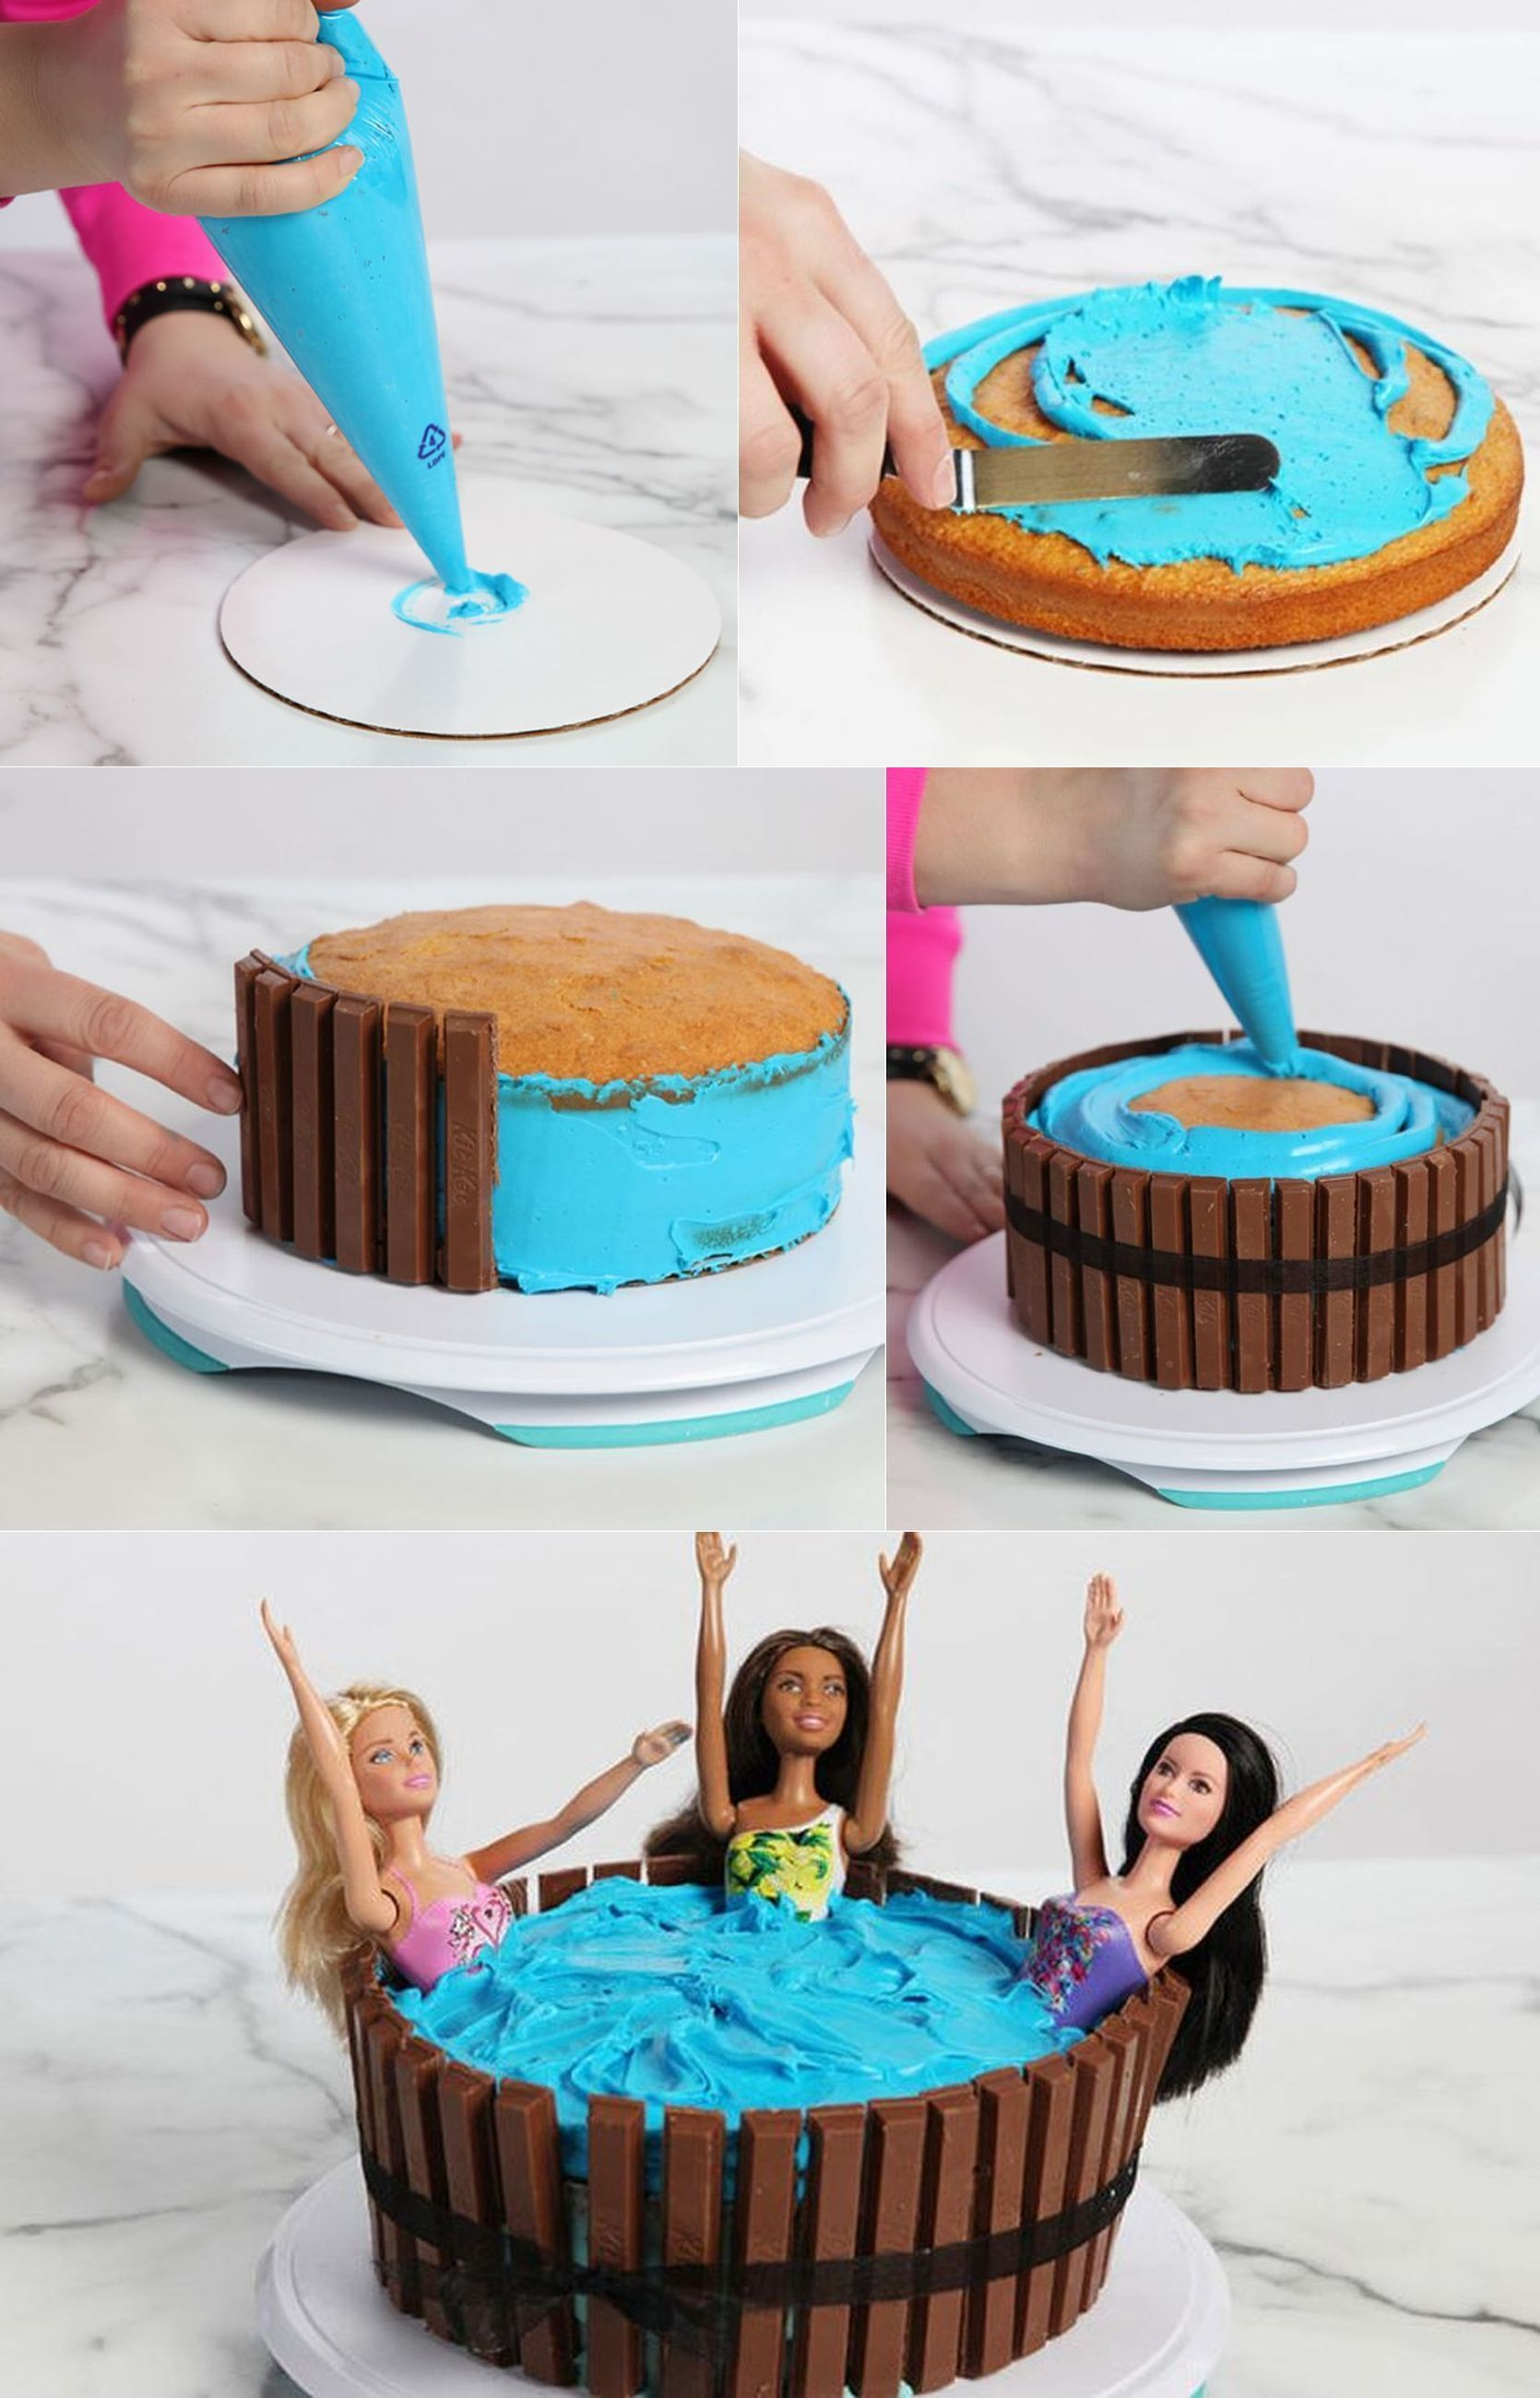 Hot Tub Kit Kat Cake Is Super Cute And Very Easy To Make Easy